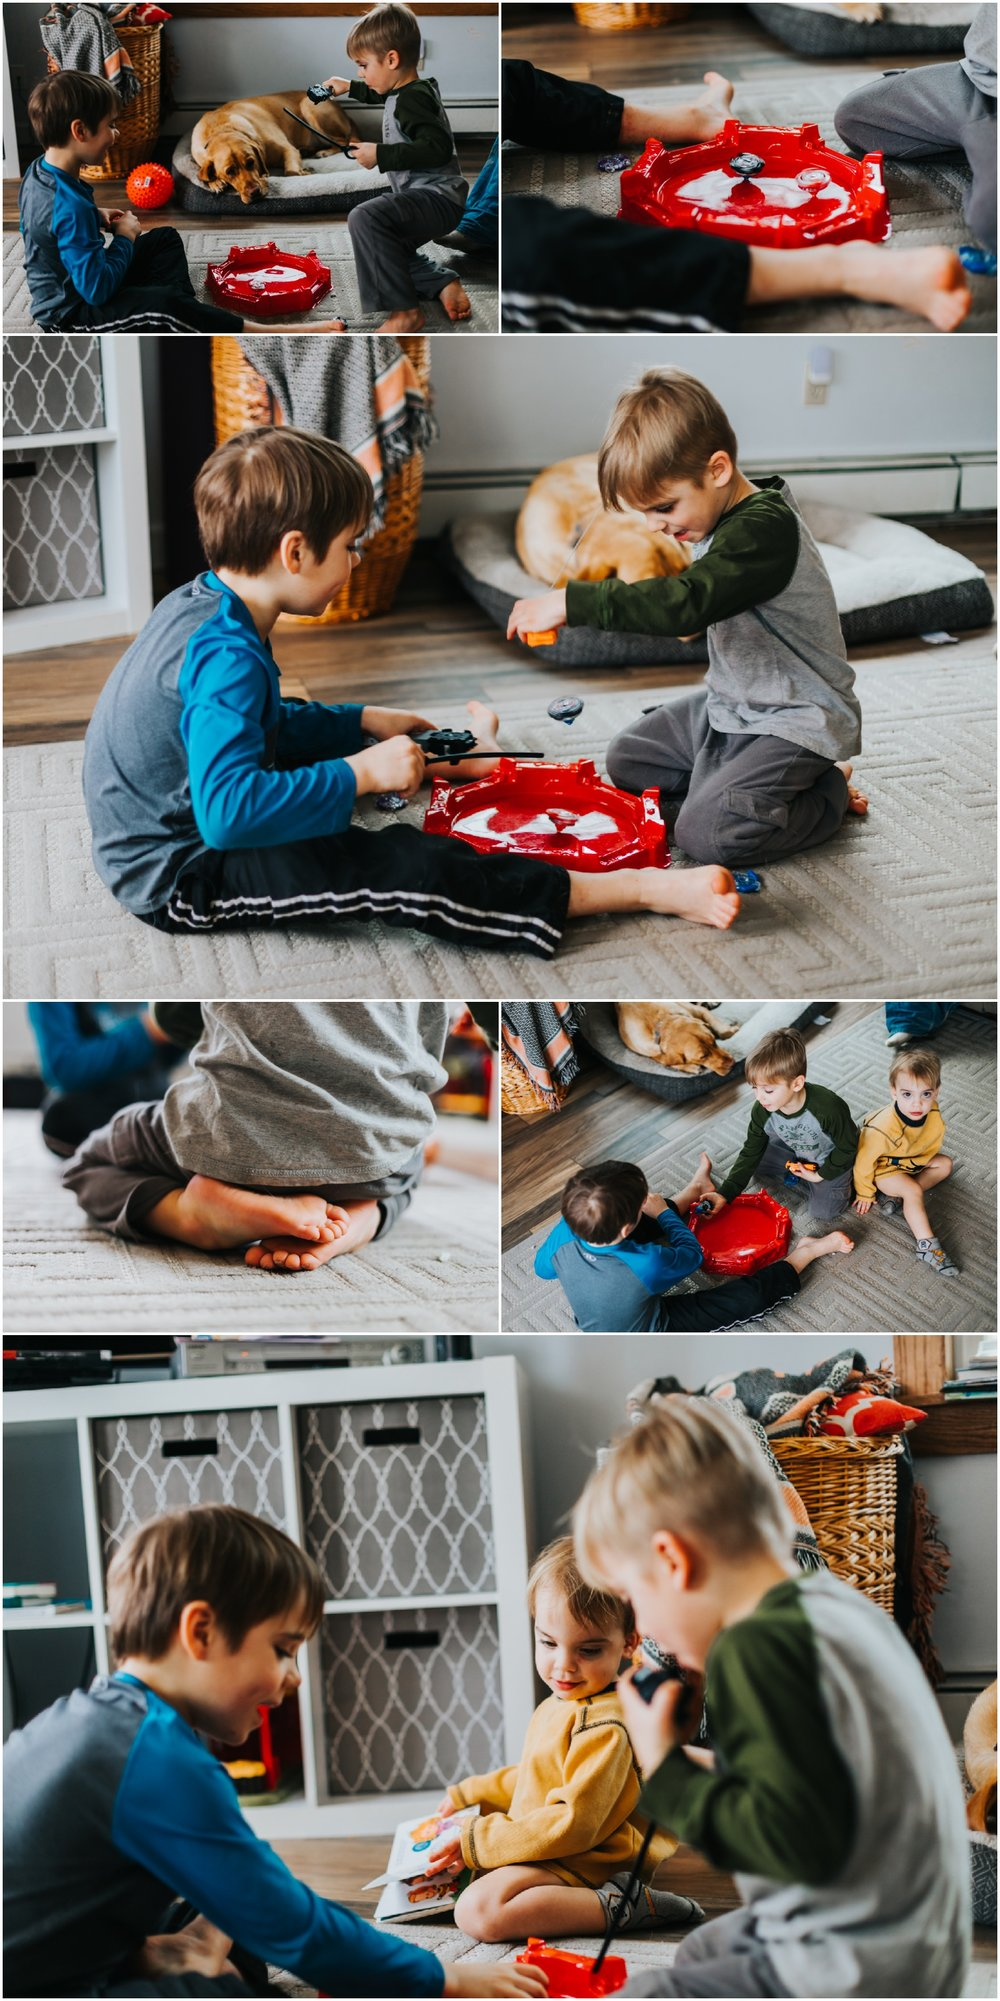 """Anyone else's kids completely enamored with BeyBlades? Our house has this constant 'whirrrrr"""" noise going on now…"""